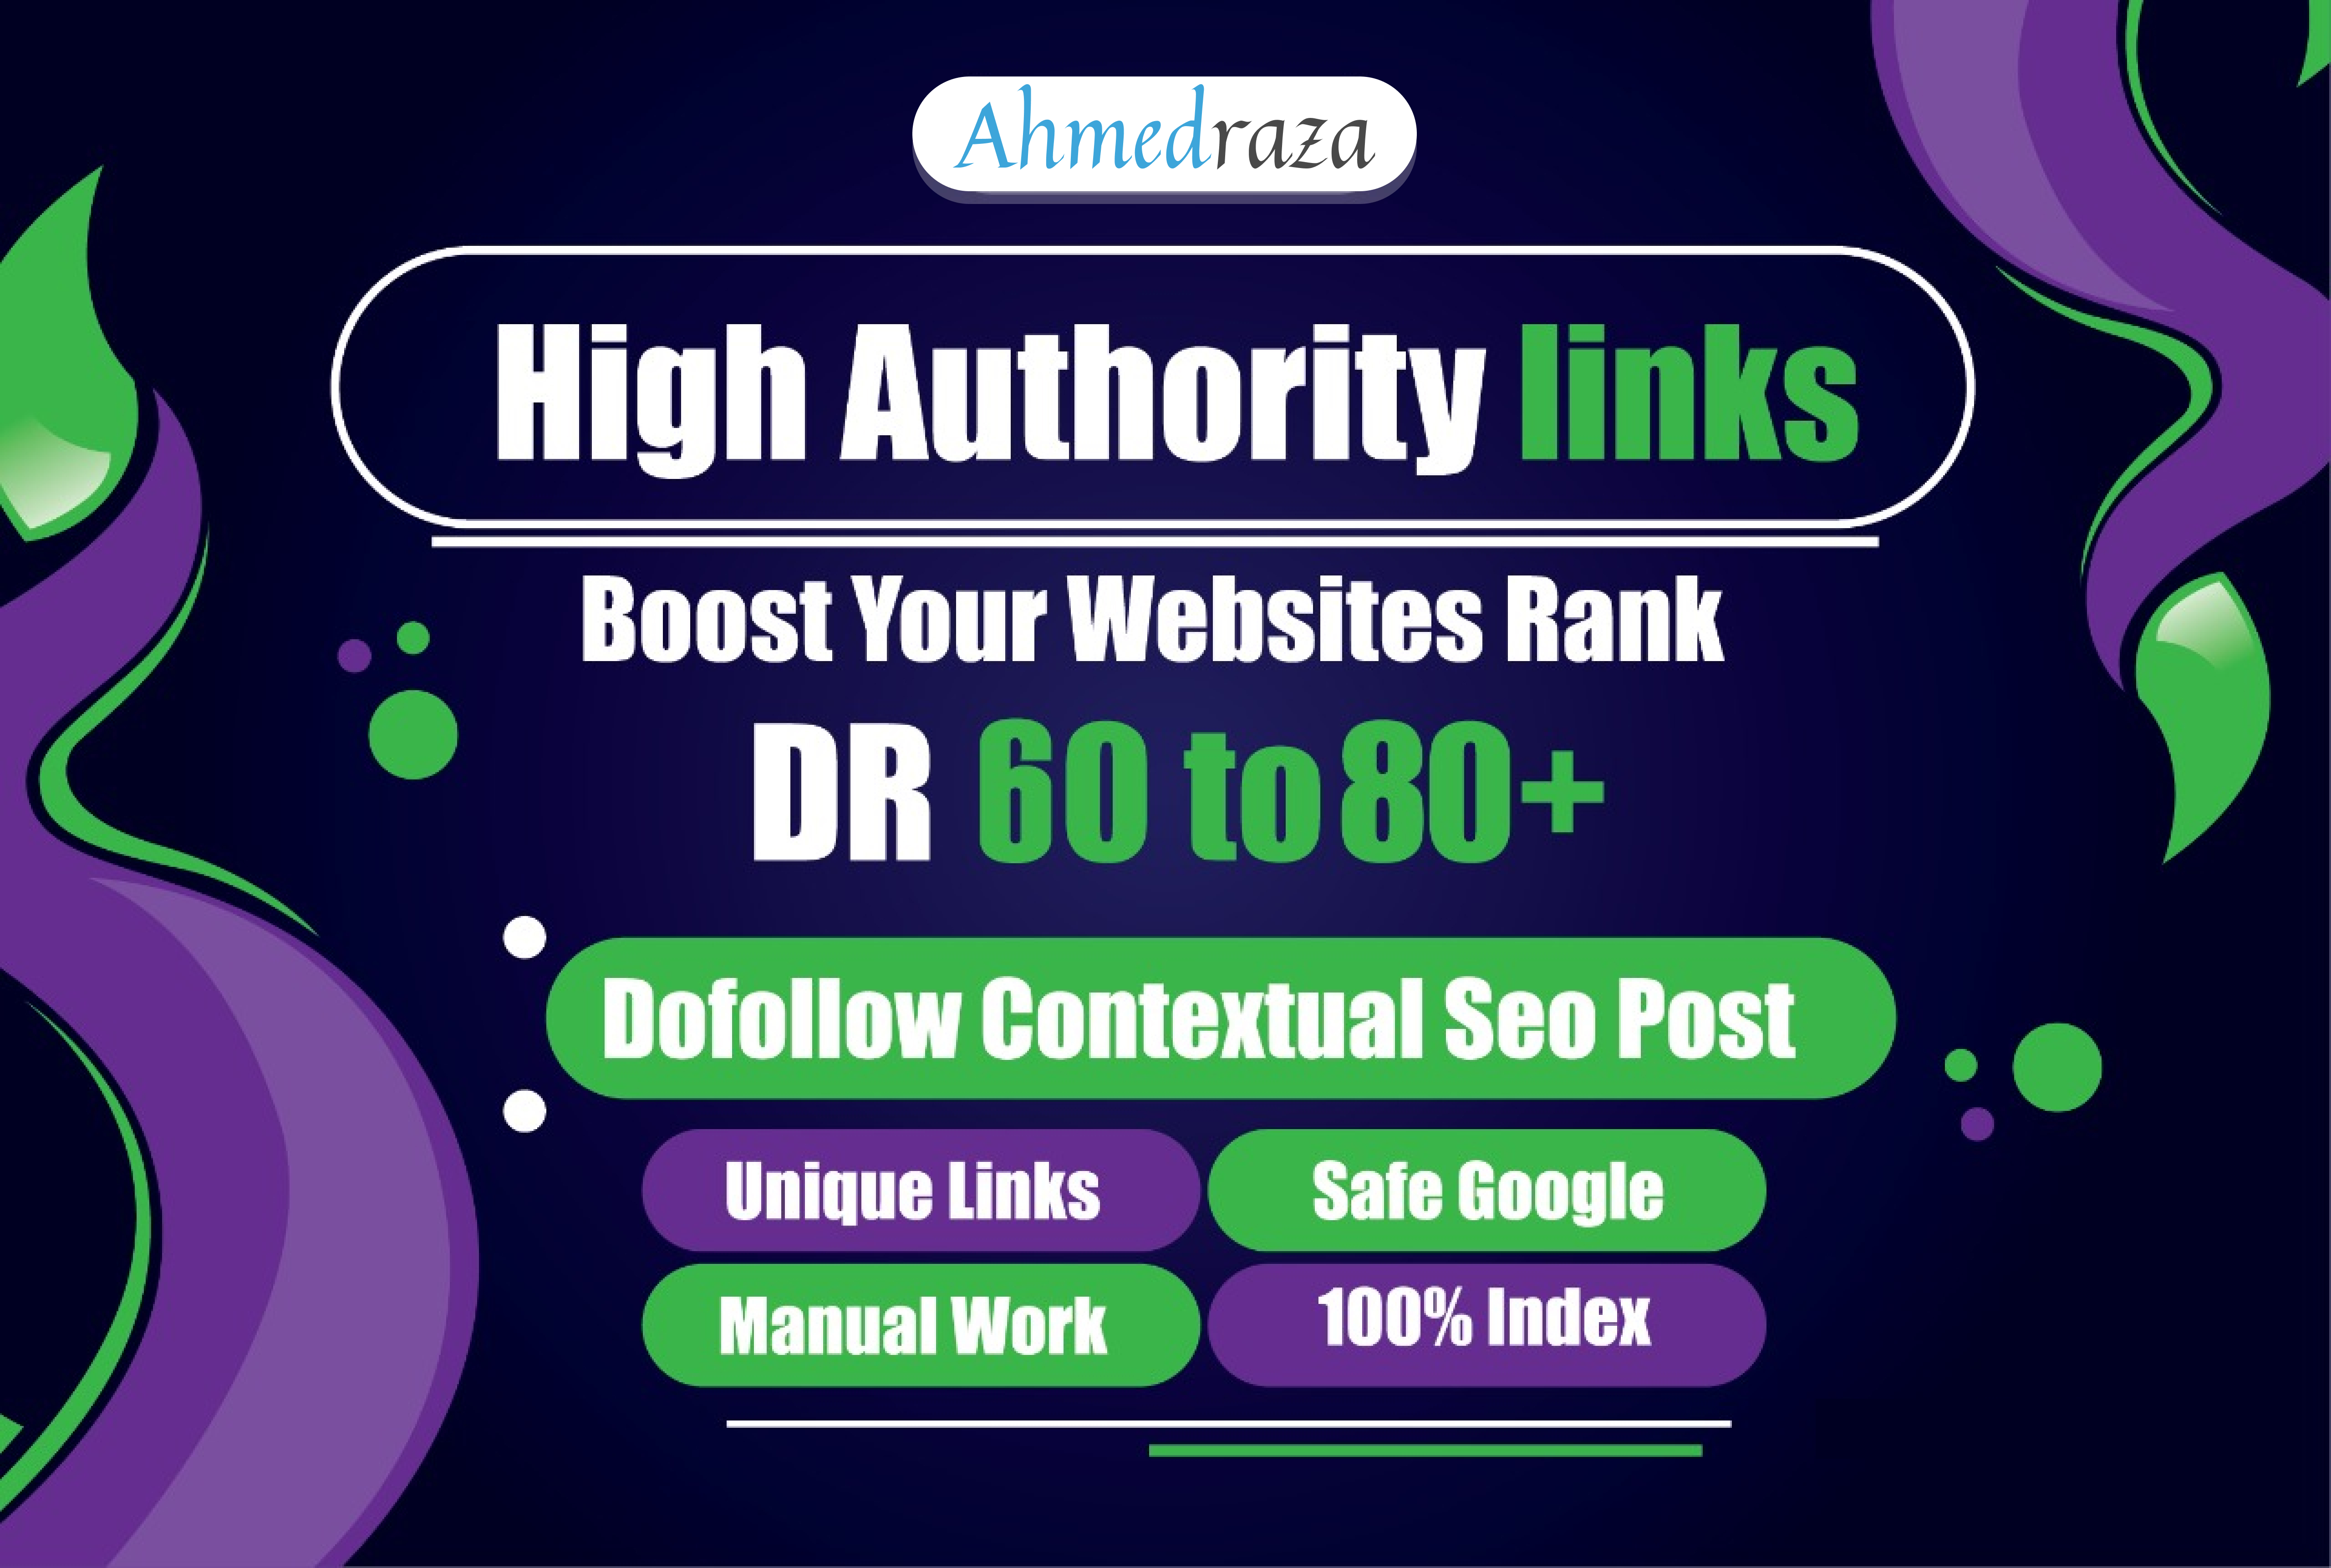 I will get 10 PBN high DR 60 to 80 doffolow backlinks rank fast in google